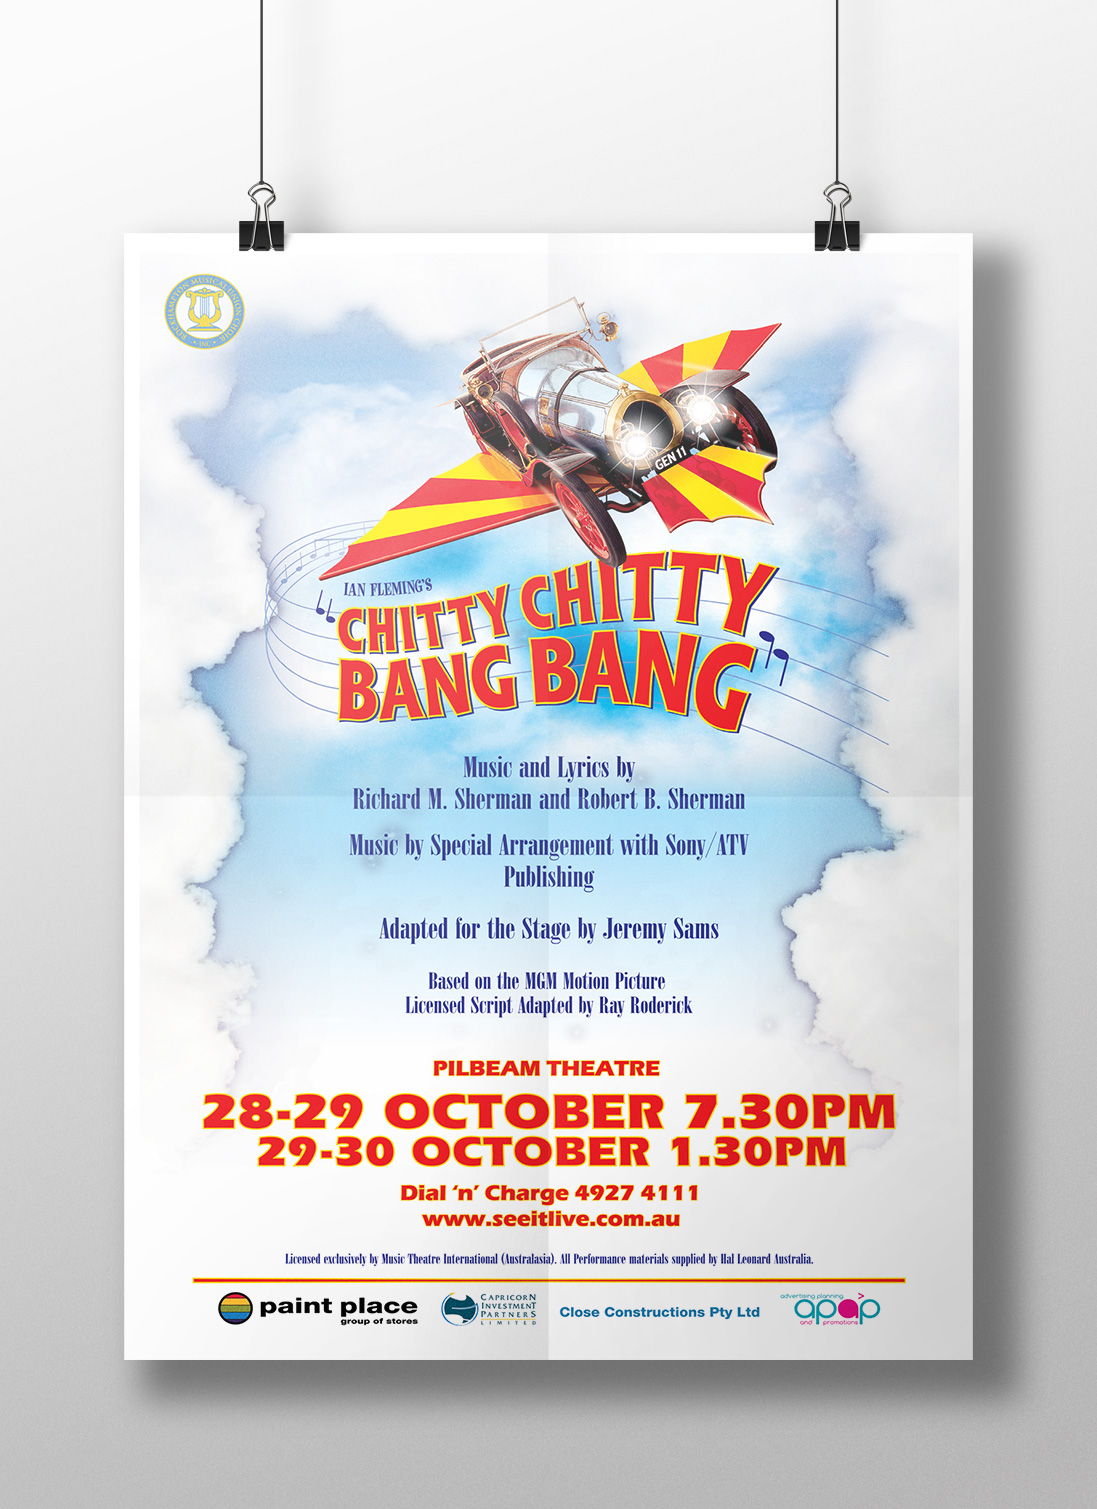 APAP Events Event Management and Graphic Design Rockhampton Chitty Chitty Bang Bang Poster Design